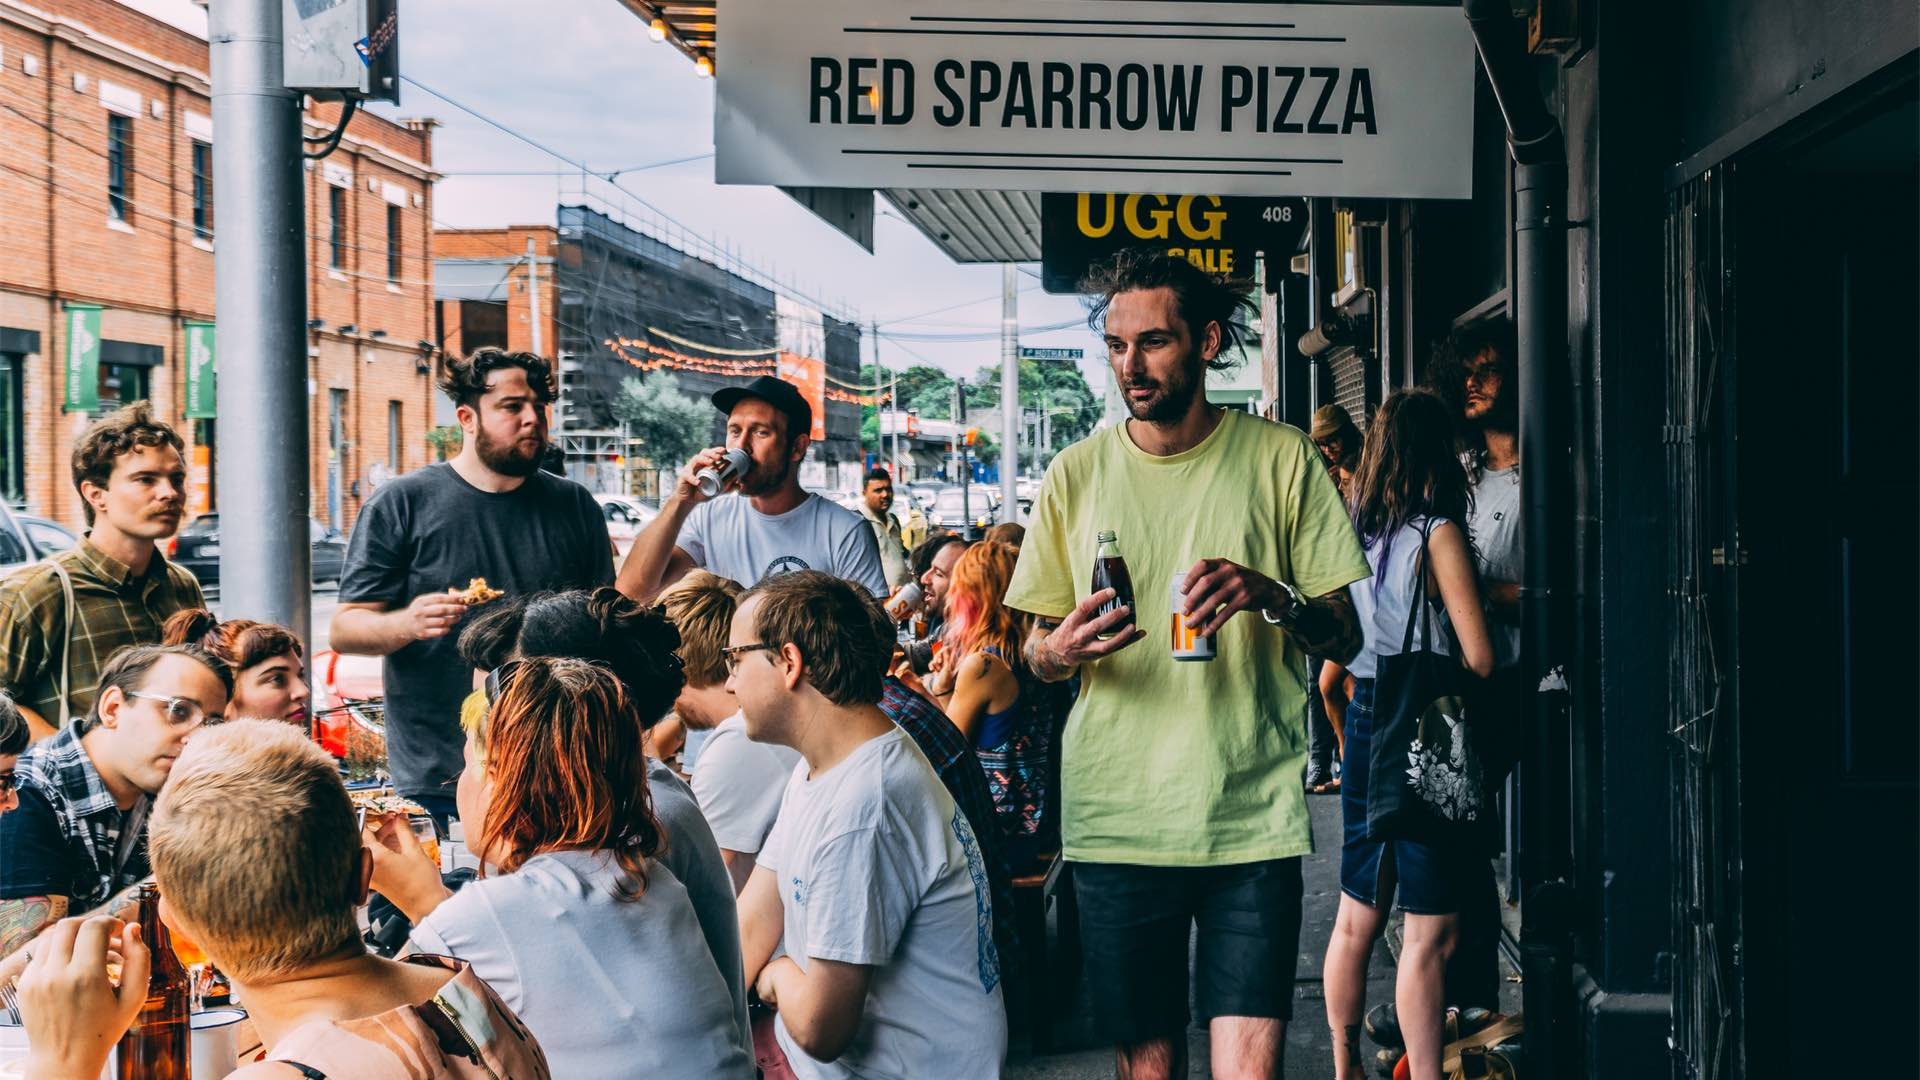 Red Sparrow Pizza